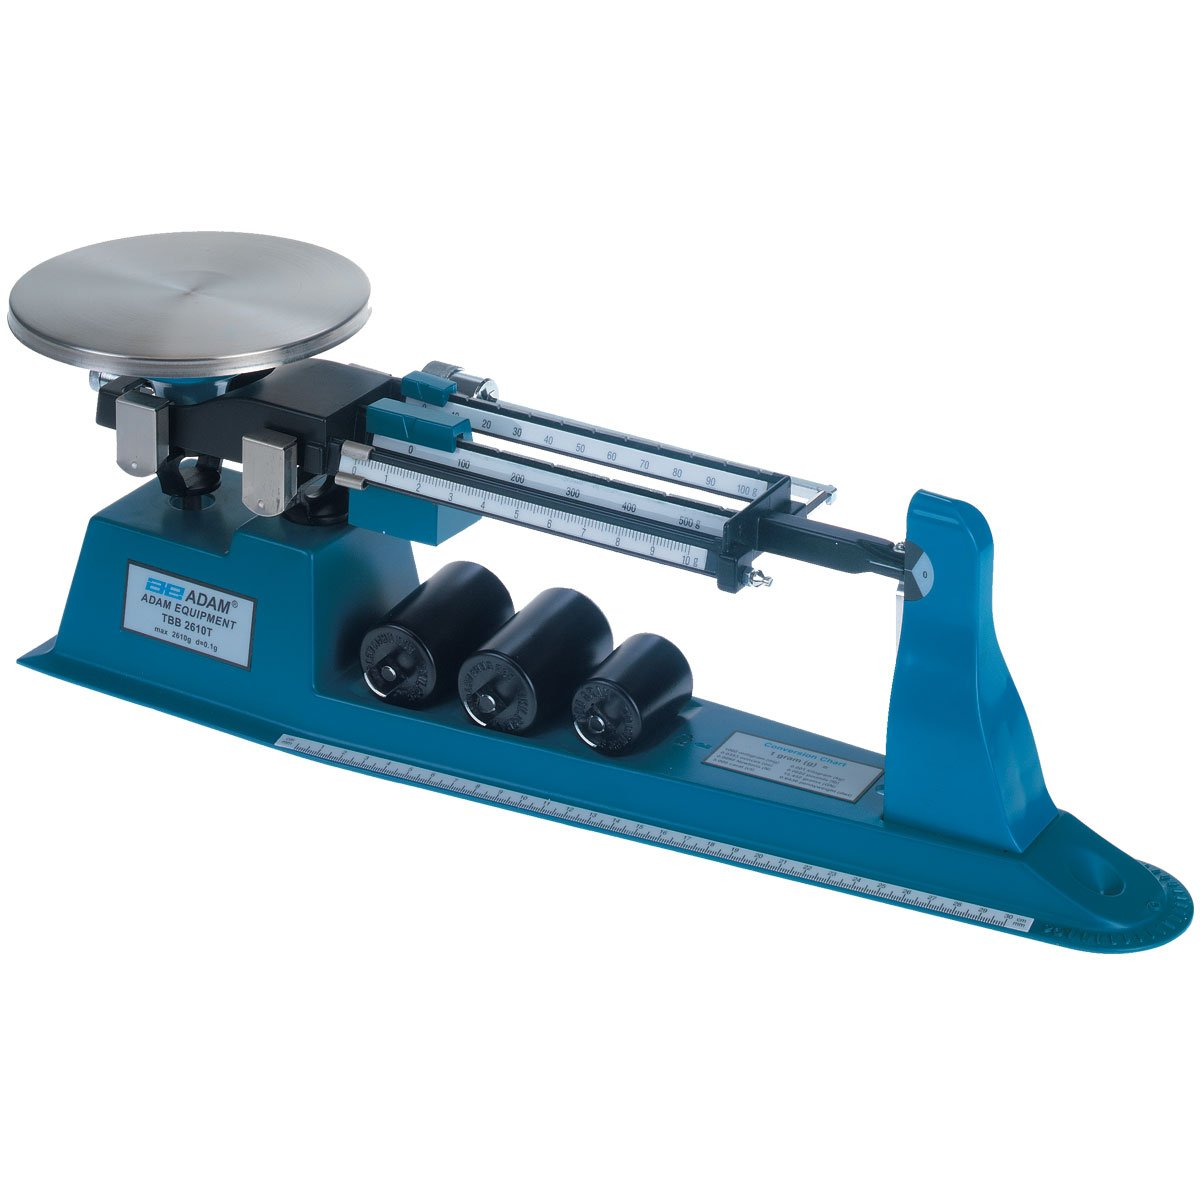 Adam Equipment TBB 2610S Triple Beam Mechanical Balance, 2610g Capacity, 0.1g Readability TBB2610S